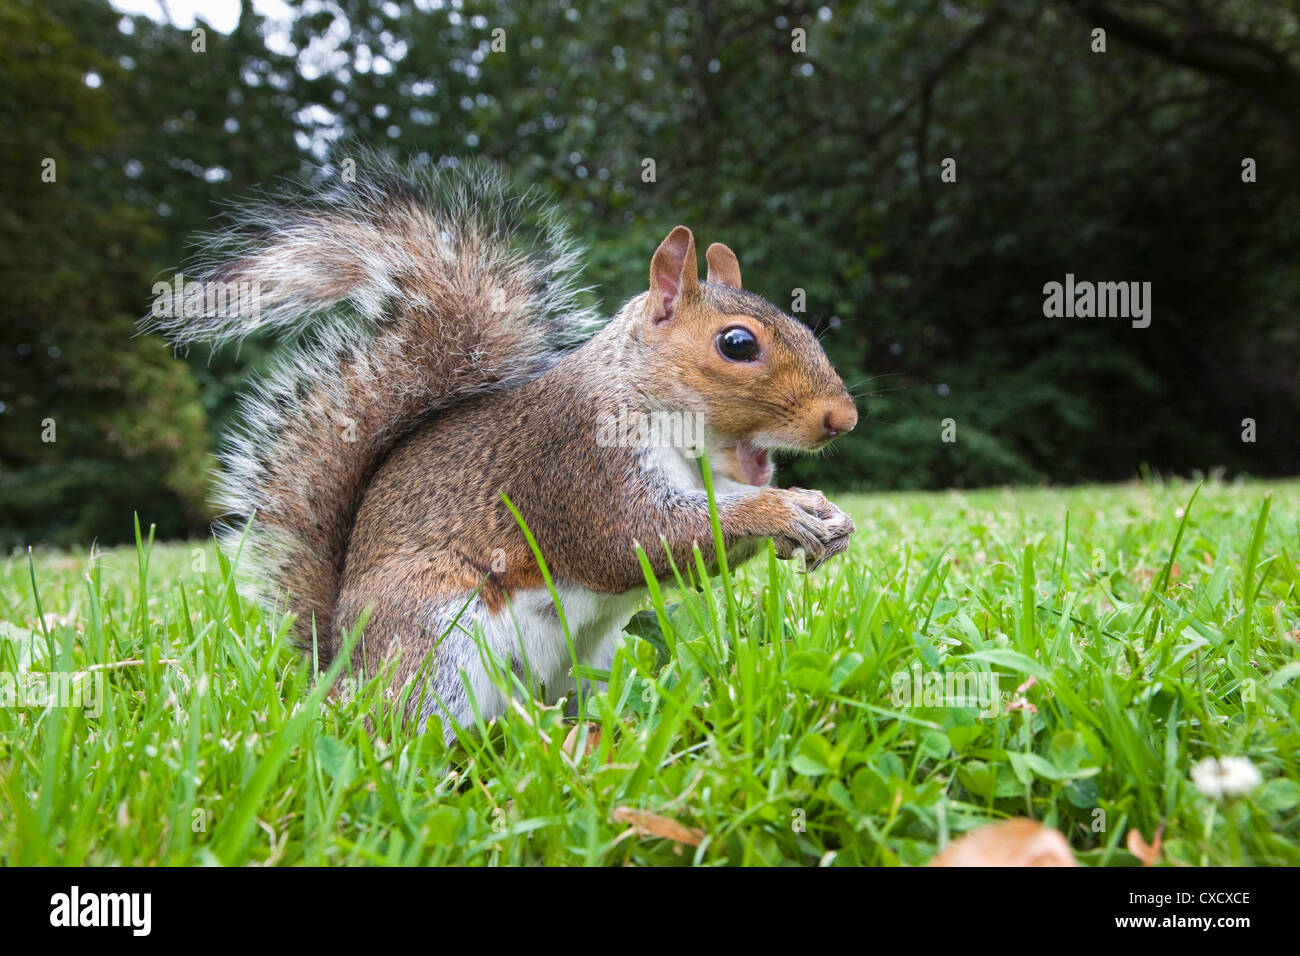 Grey squirrel (Sciurus carolinensis), in city park, Brandon Park, Bristol, England, United Kingdom, Europe - Stock Image